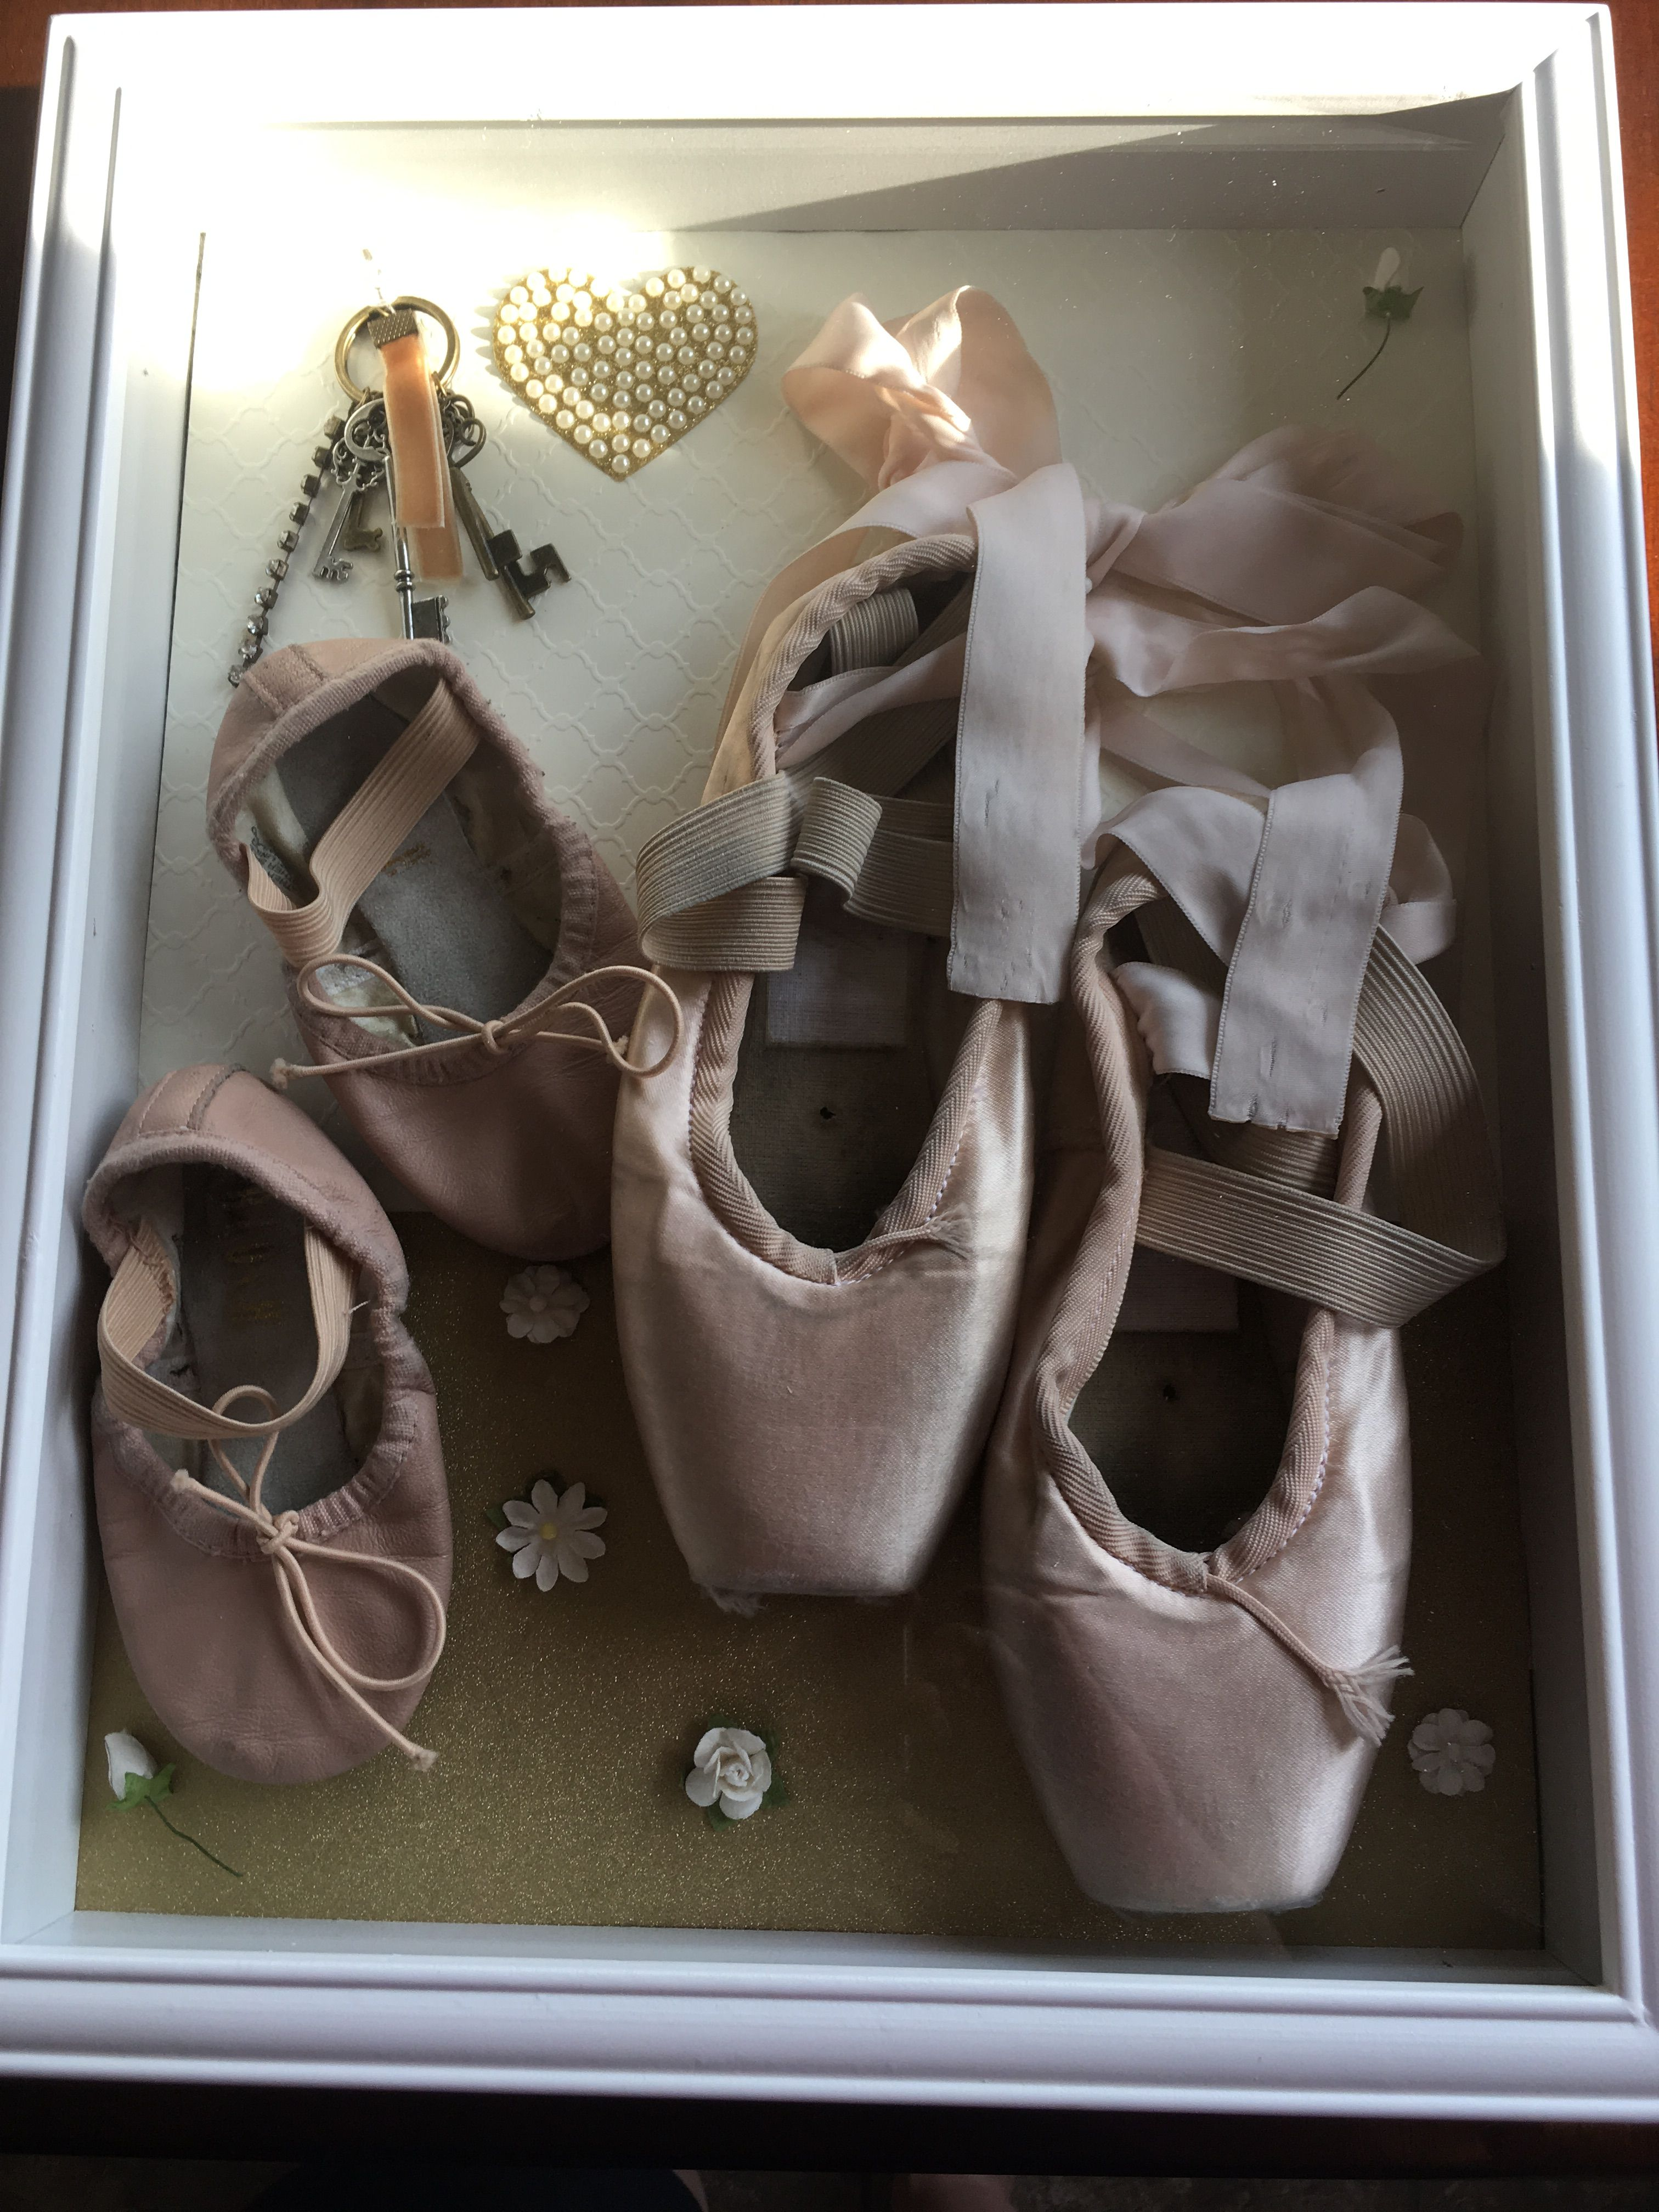 Lot of 4 pairs new pointe shoes for arts and crafts//decorating